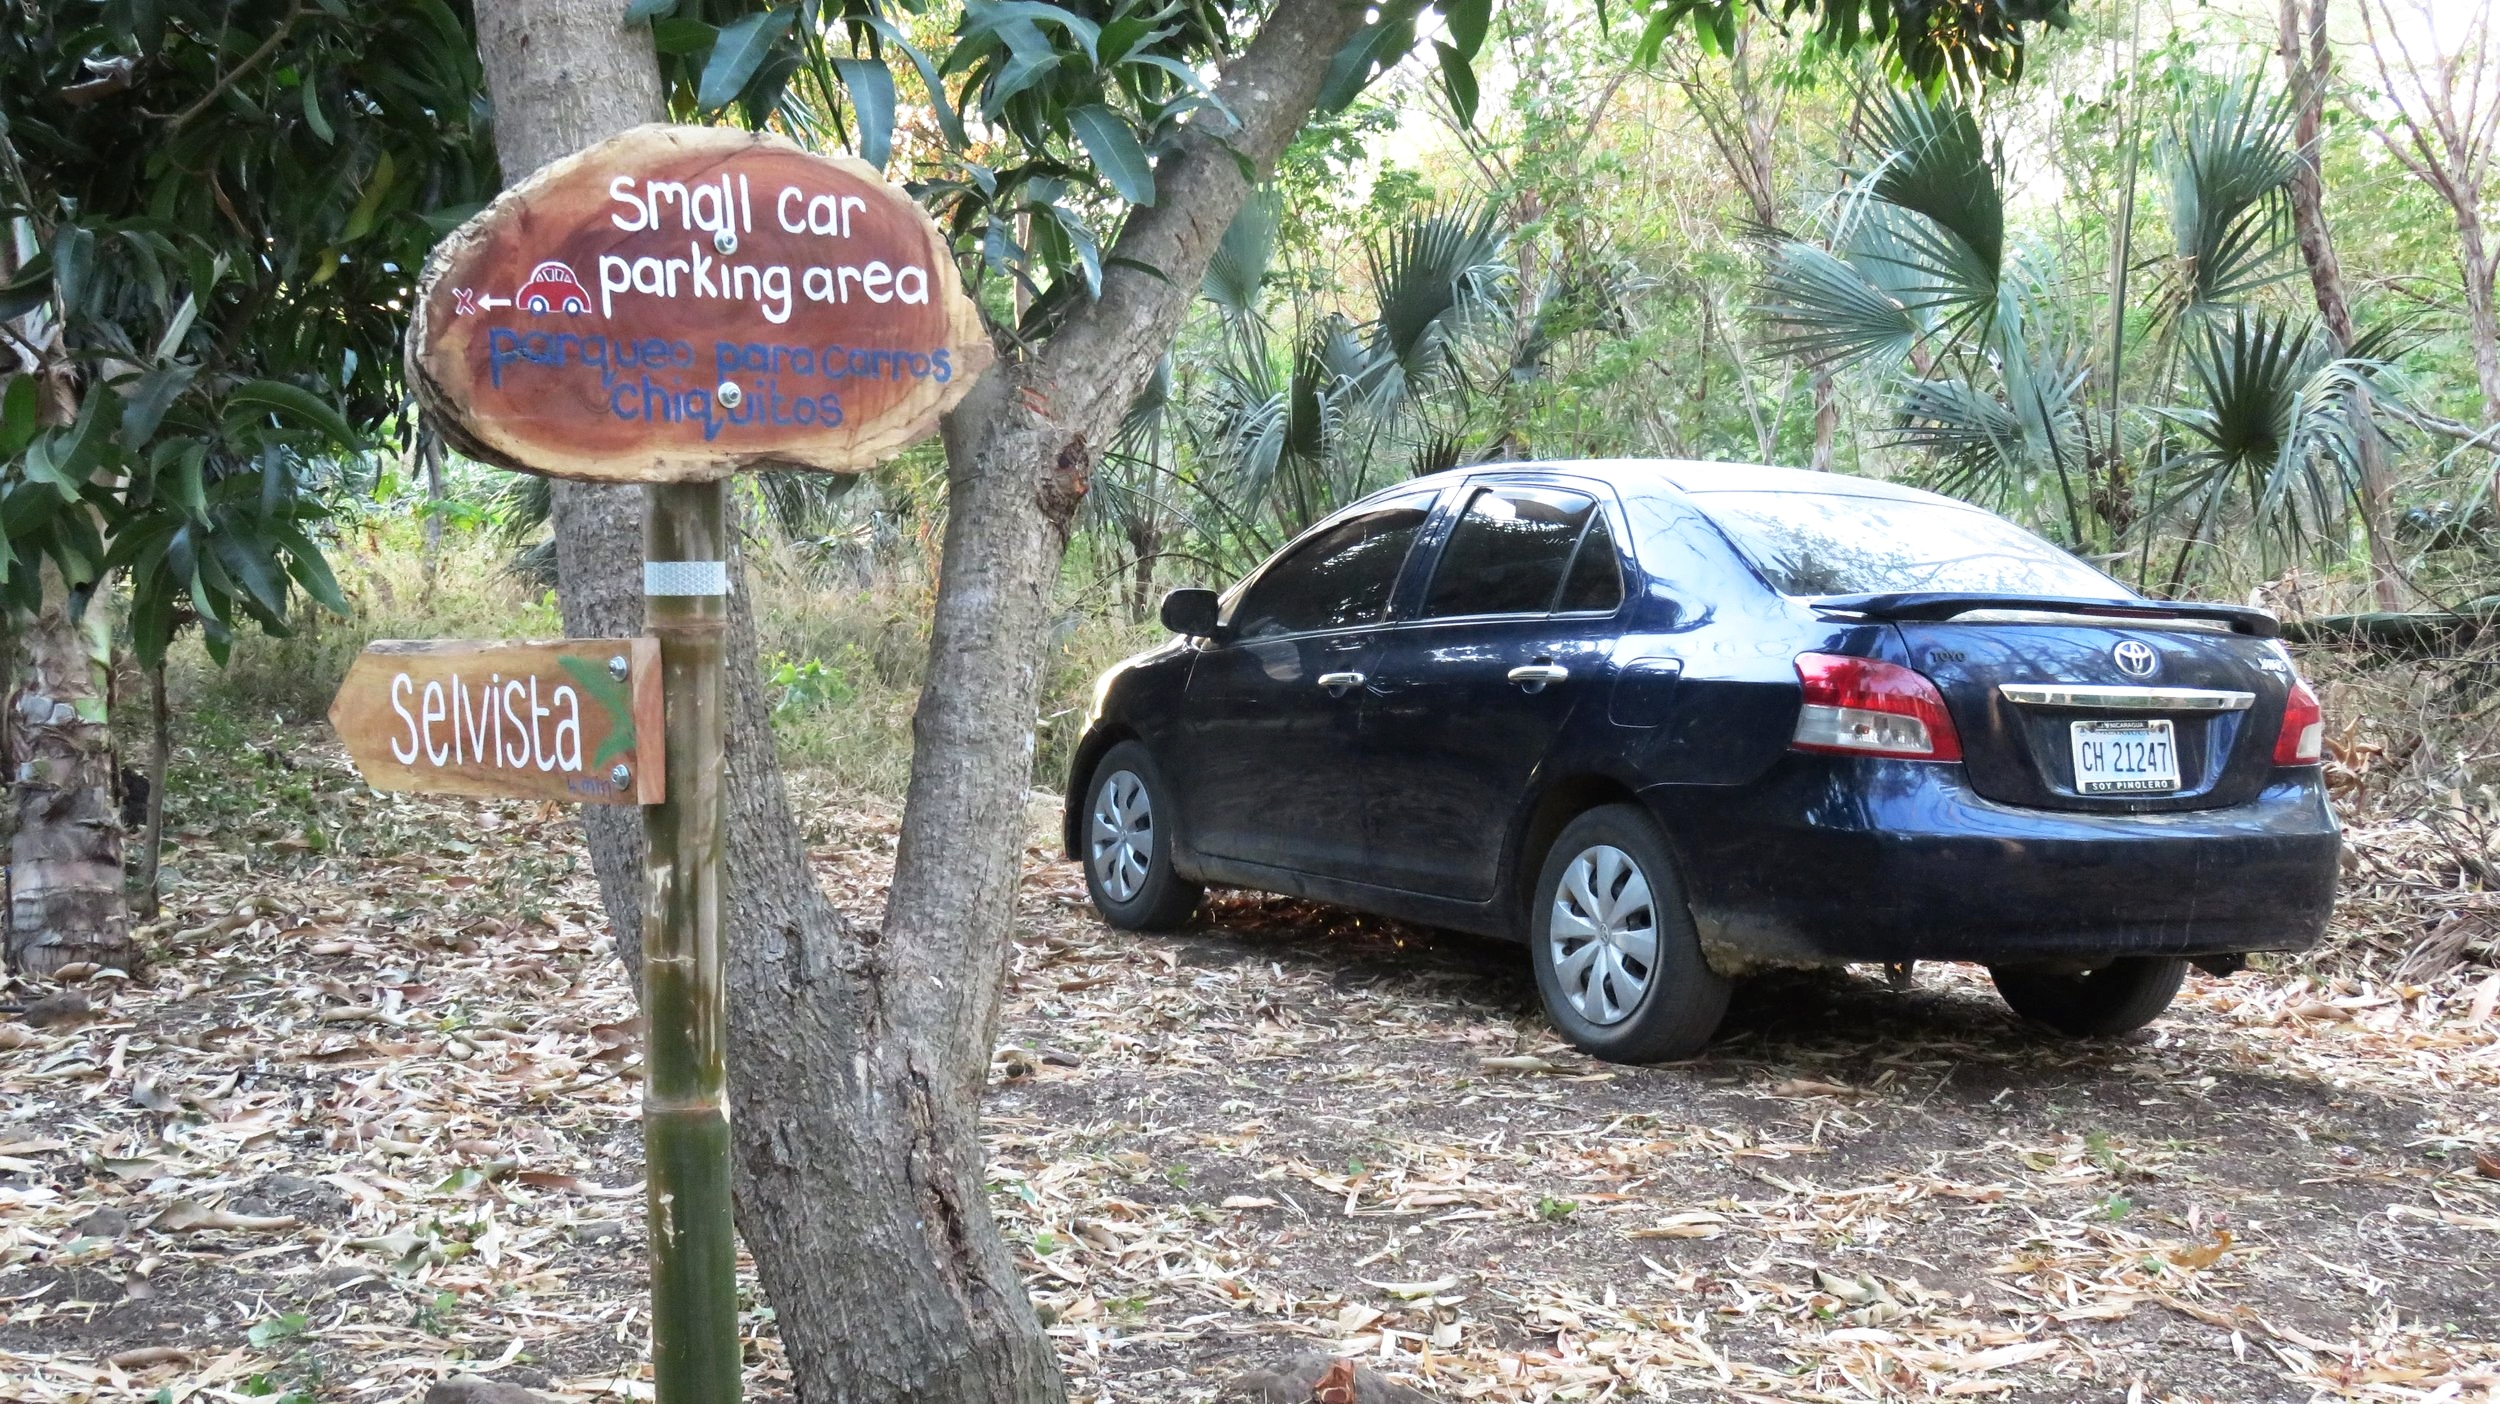 Off-road vehicle parking for guests at Selvista